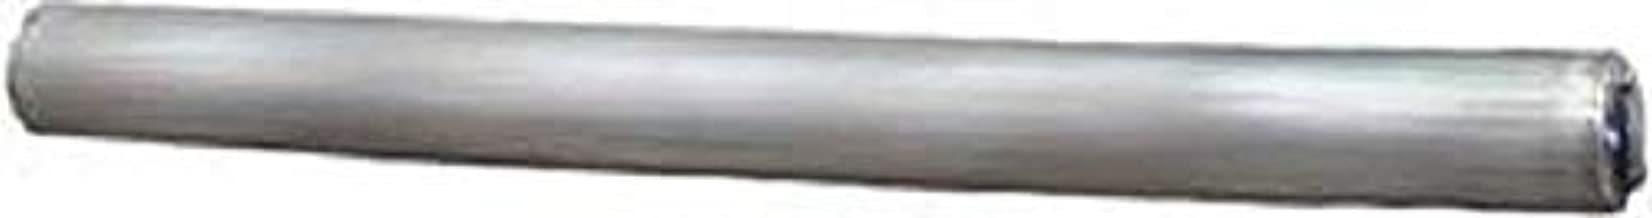 Concrete Roller Screed Tube- 12'